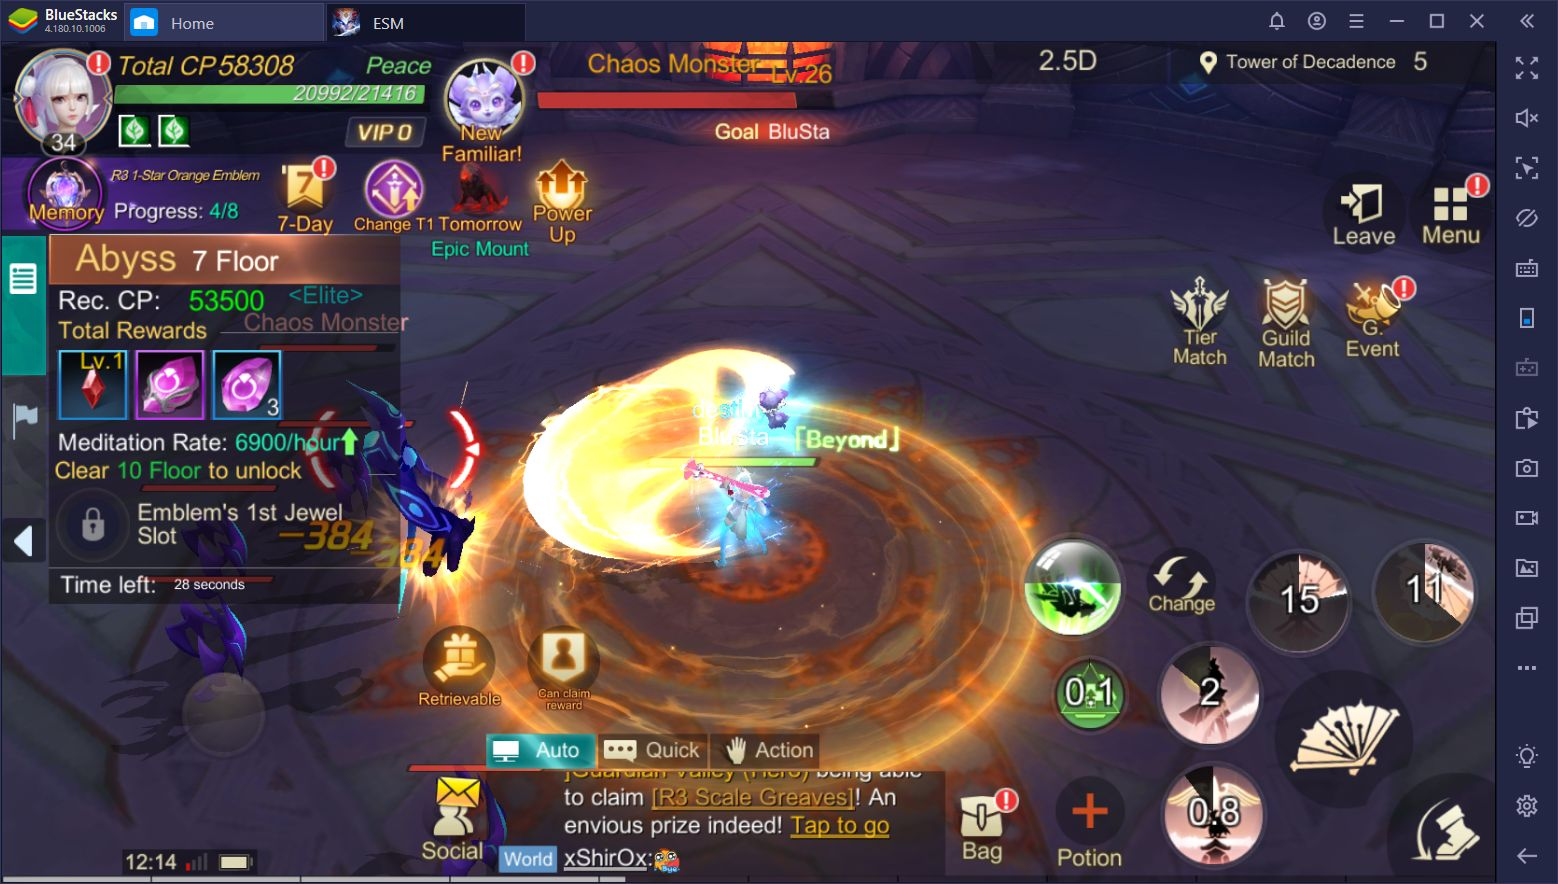 Eternal Sword M on PC – Beginner's Guide for Daily Challenges and Upgrades